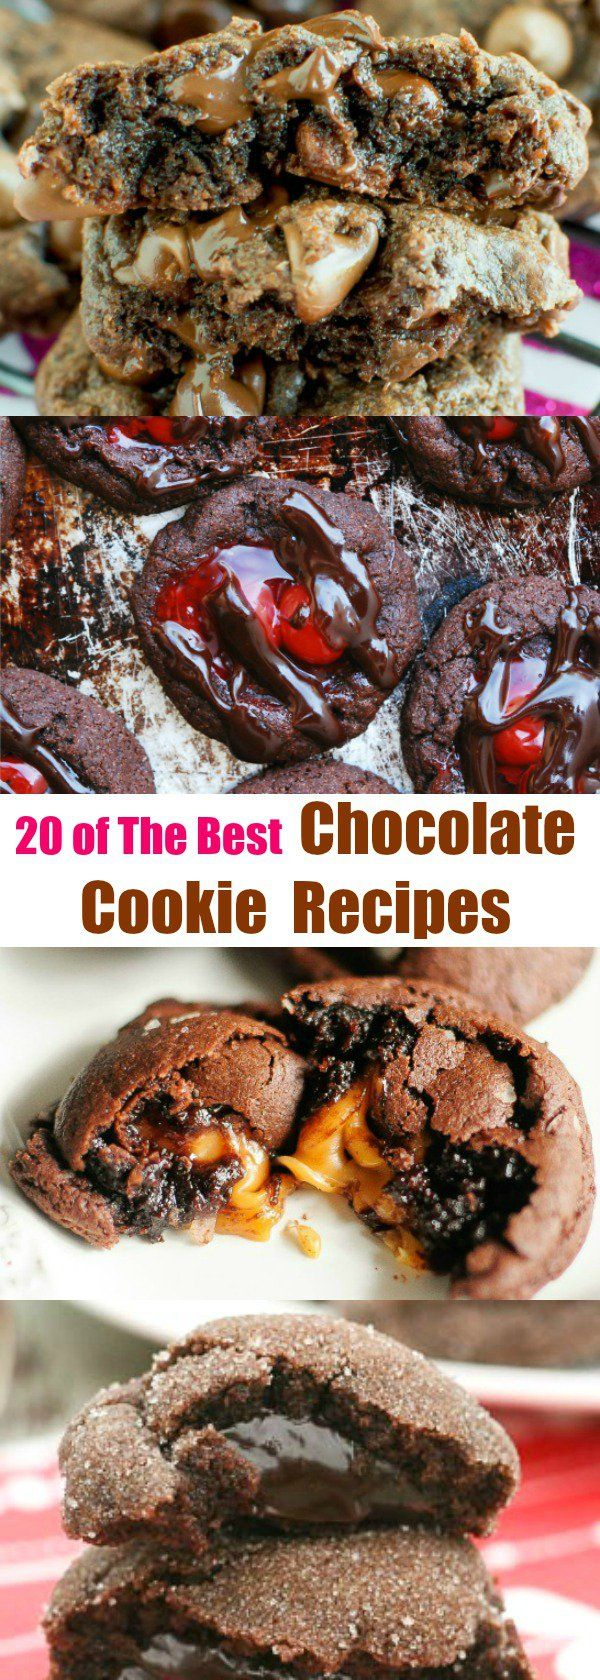 20 of the Best Chocolate Cookie Recipes You Can Find!